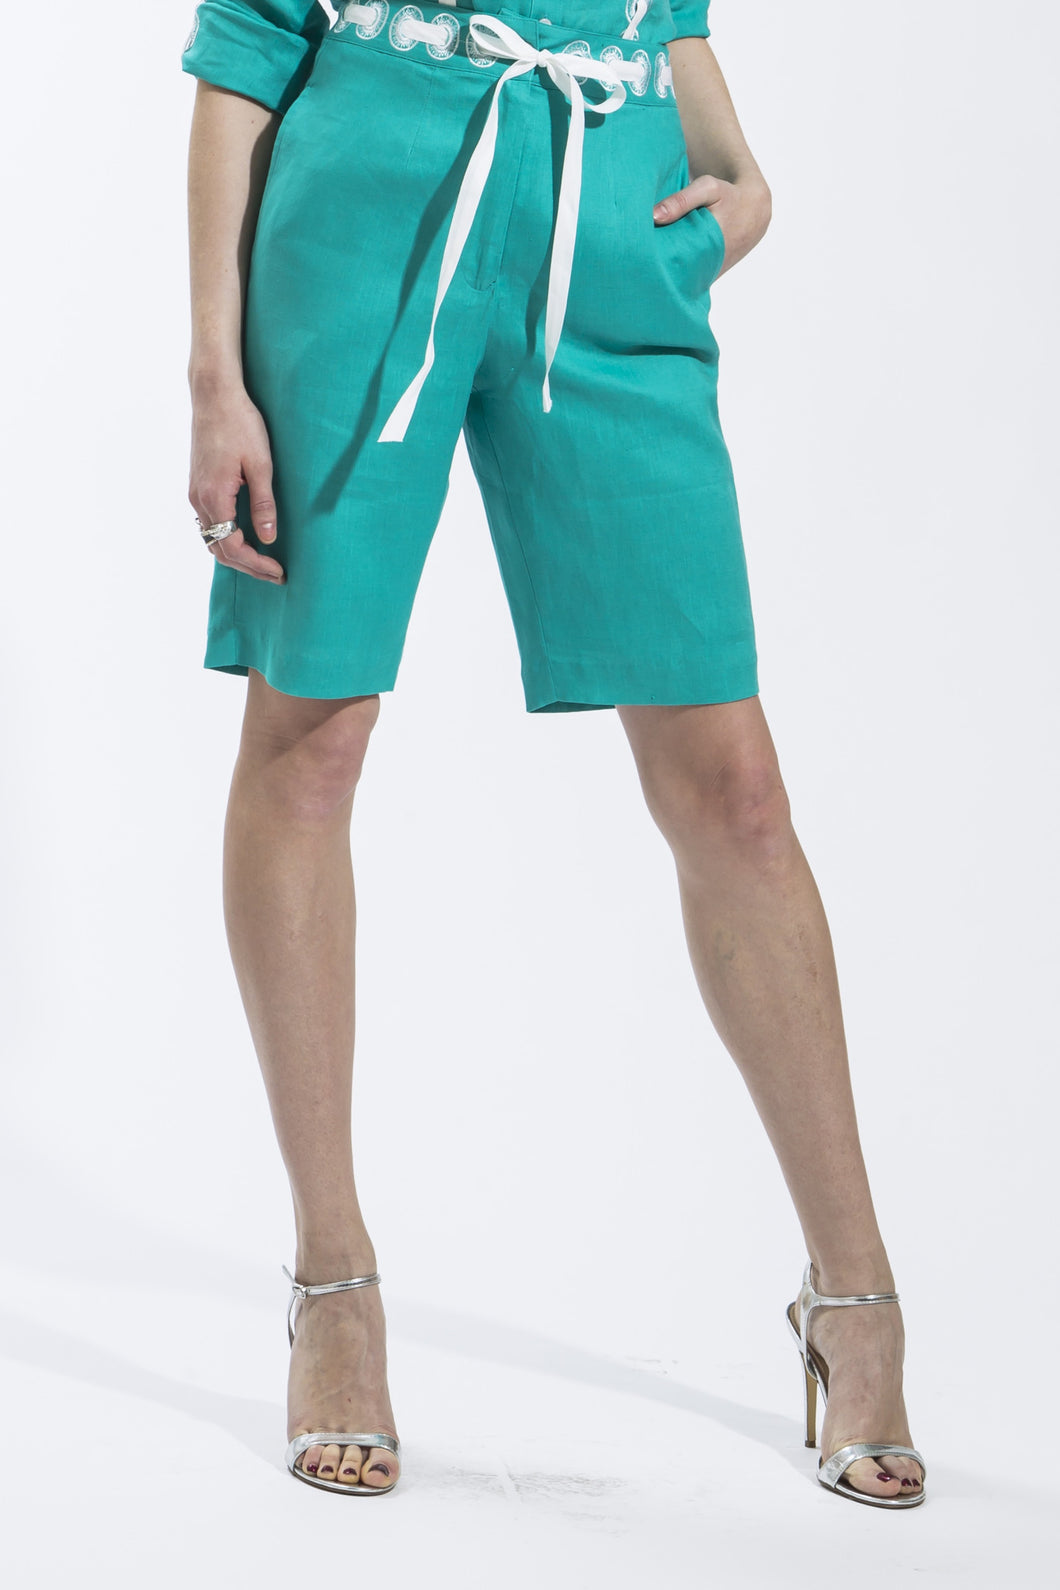 Ribbon Threaded Circle Linen Shorts Style 1816